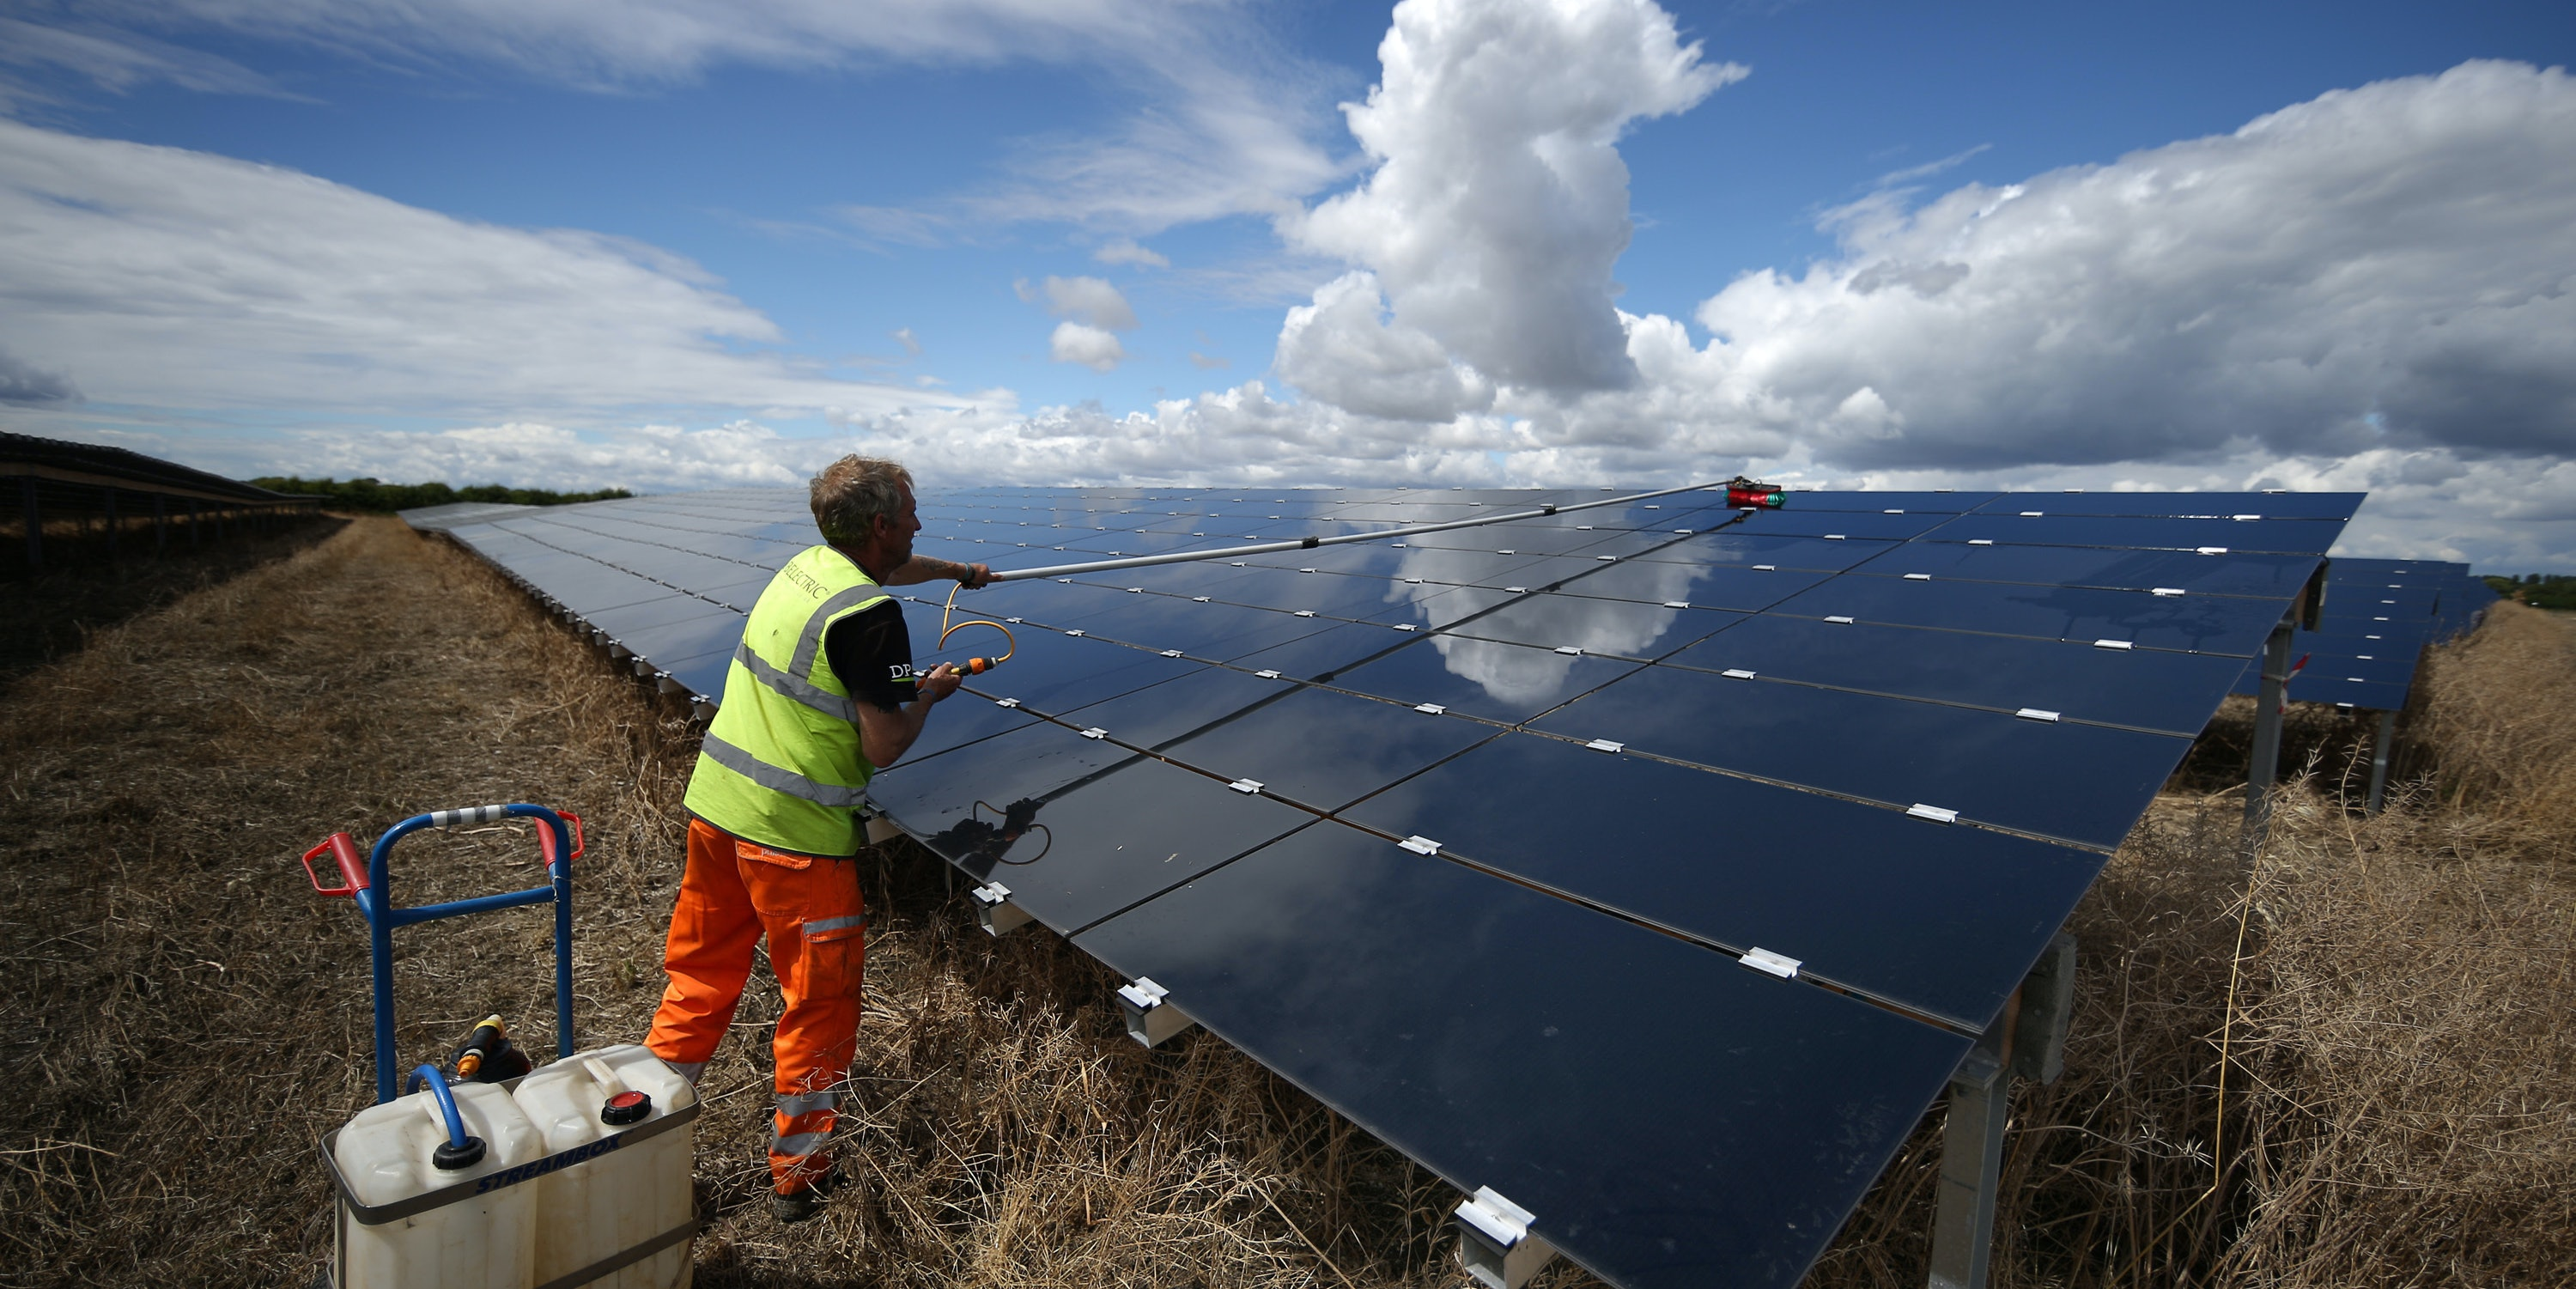 ABINGDON, ENGLAND - JULY 29:  A workman cleans panels at Landmead solar farm on July 29, 2015 near Abingdon, England. The 46 megawatt capacity installation was the largest in the United Kingdom when it was completed in 2014. Operated by BELECTRIC UK it supplies around 45 million kWh (kilowatt hours) of clean energy per year, enough to power 14,000 average homes.  (Photo by Peter Macdiarmid/Getty Images)